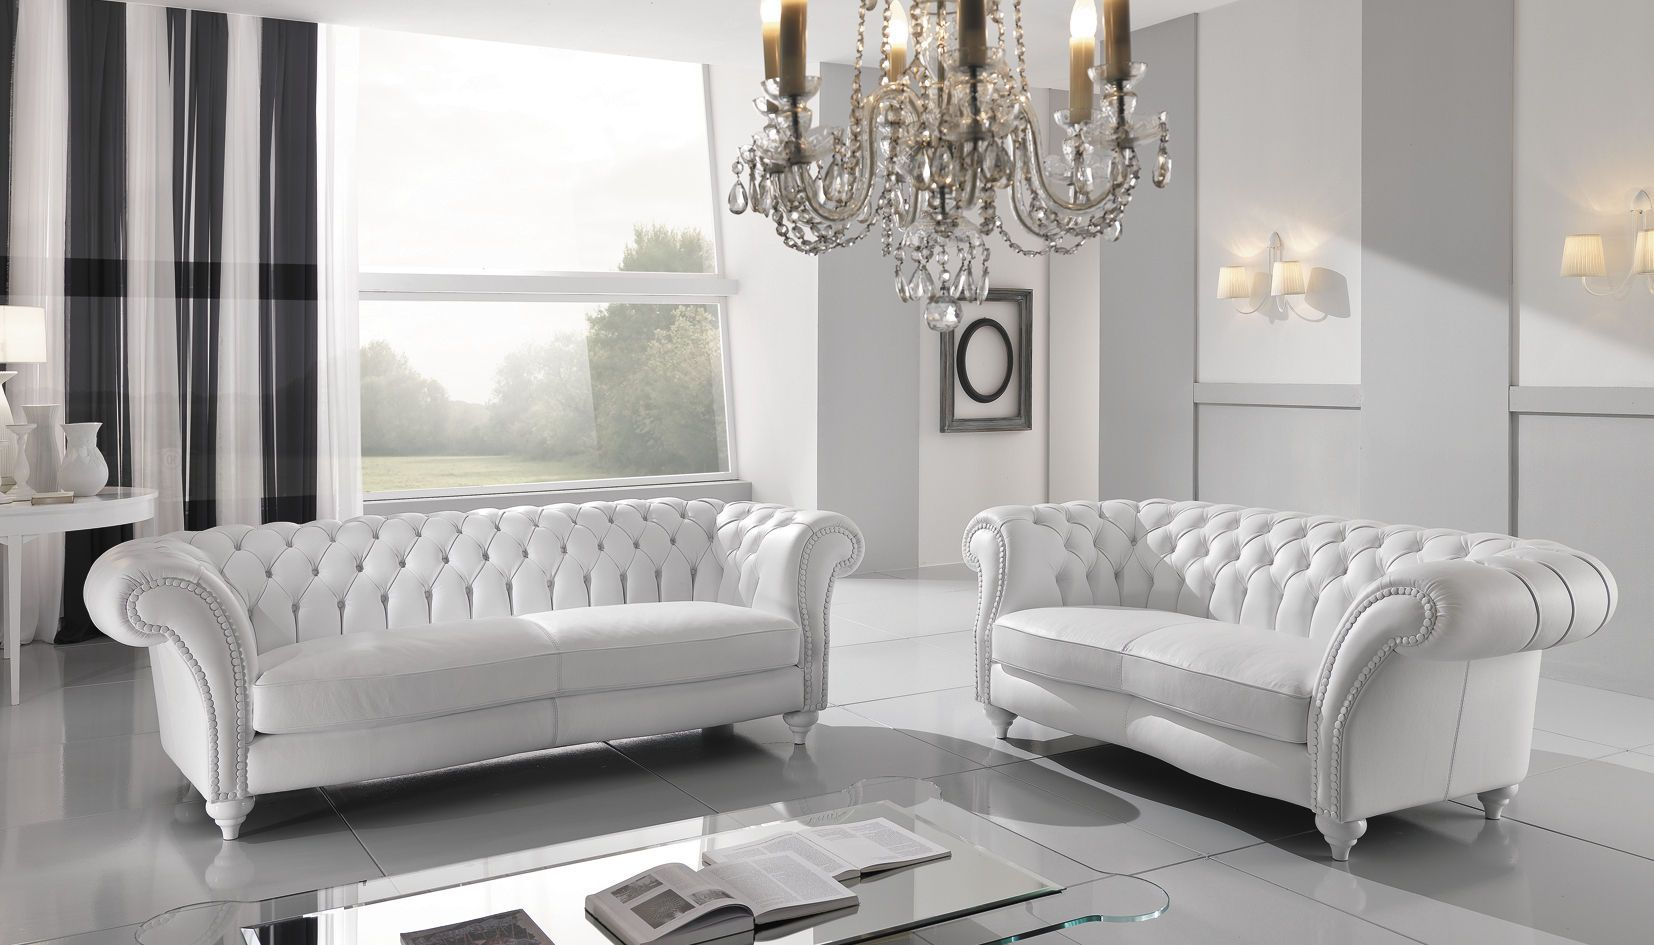 sofas black white decor room decorating ideas living room ideas